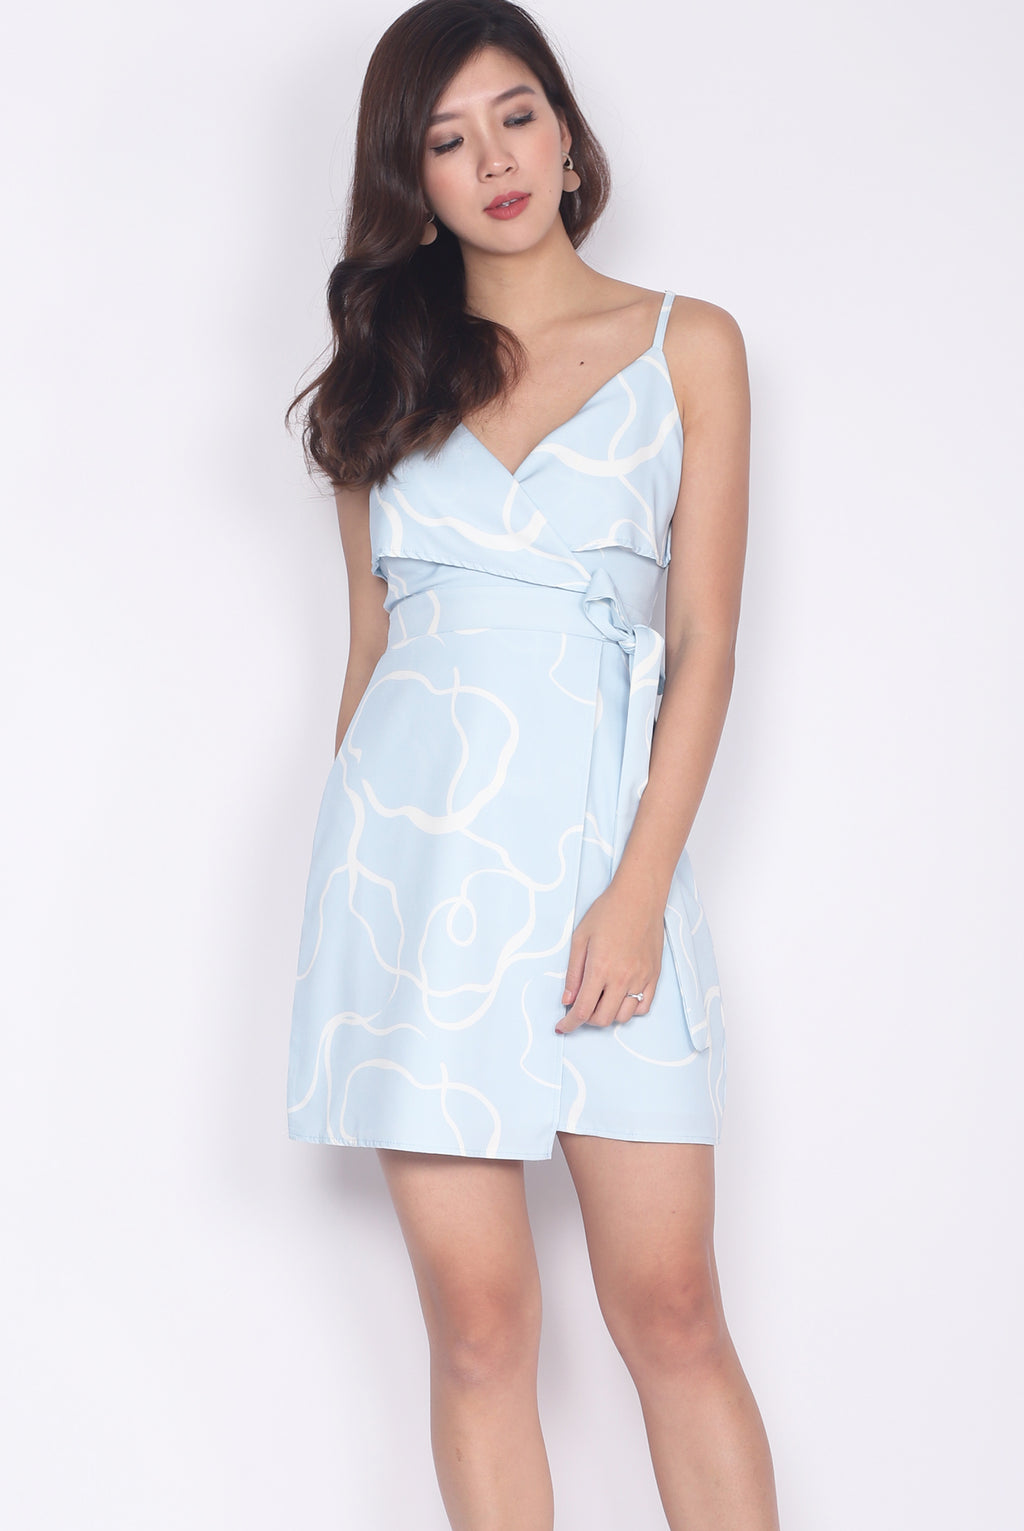 Gelasia Abtract Spag Dress In Skyblue